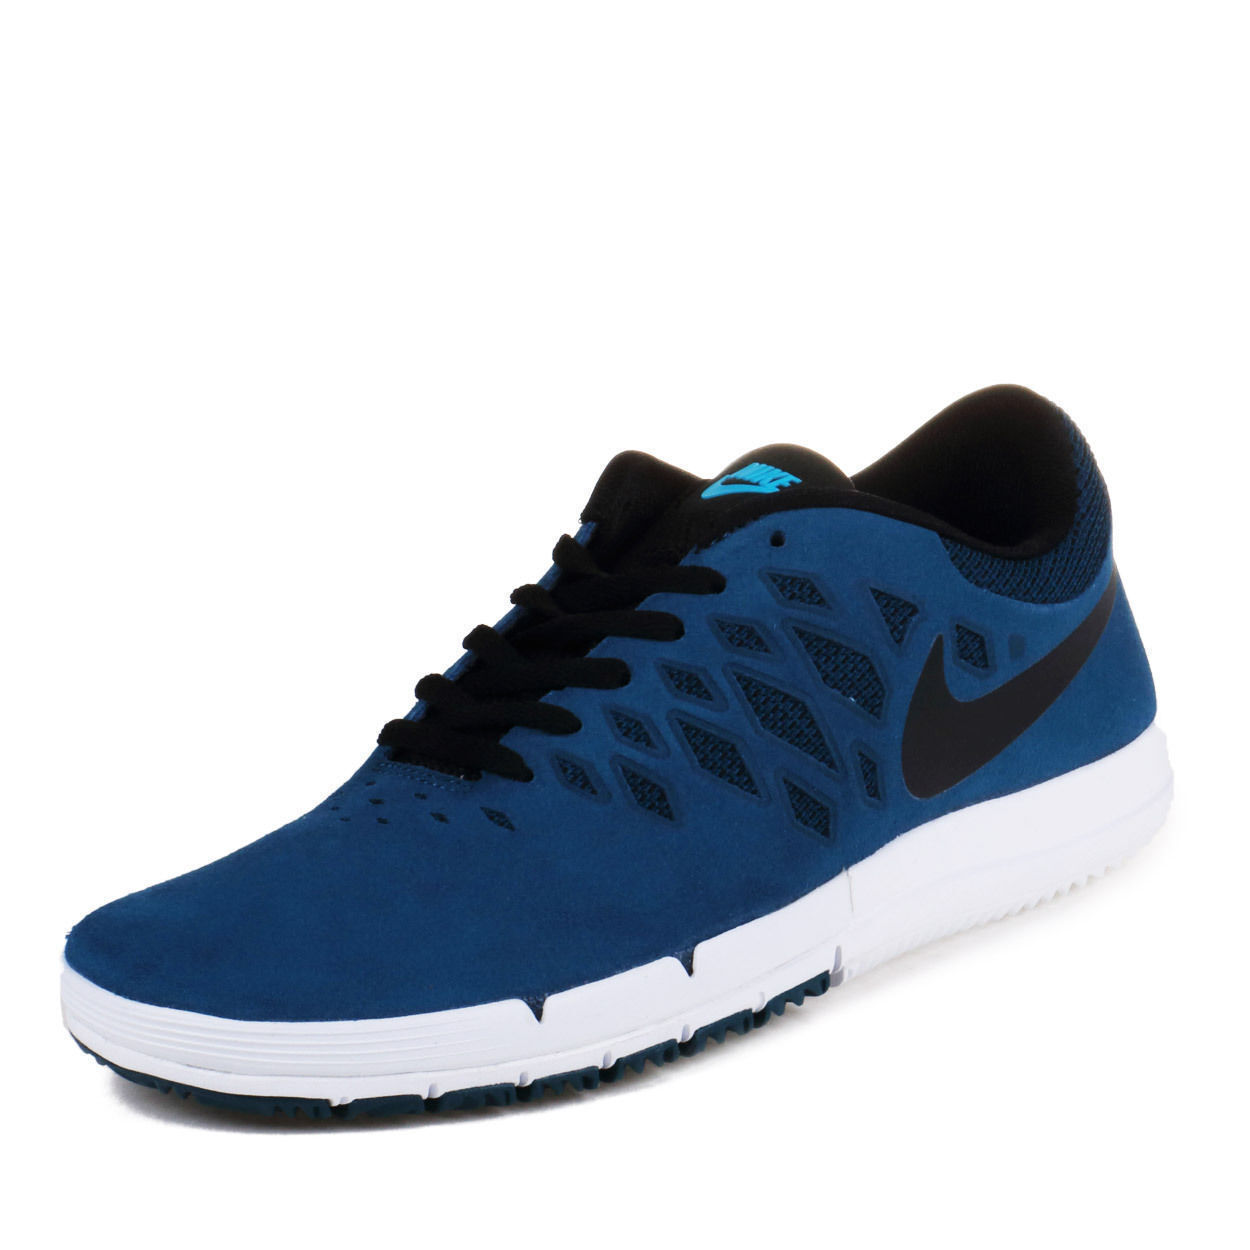 New Nike Men's Free SB Blue Force Running Training Shoes Sneakers 704936 404